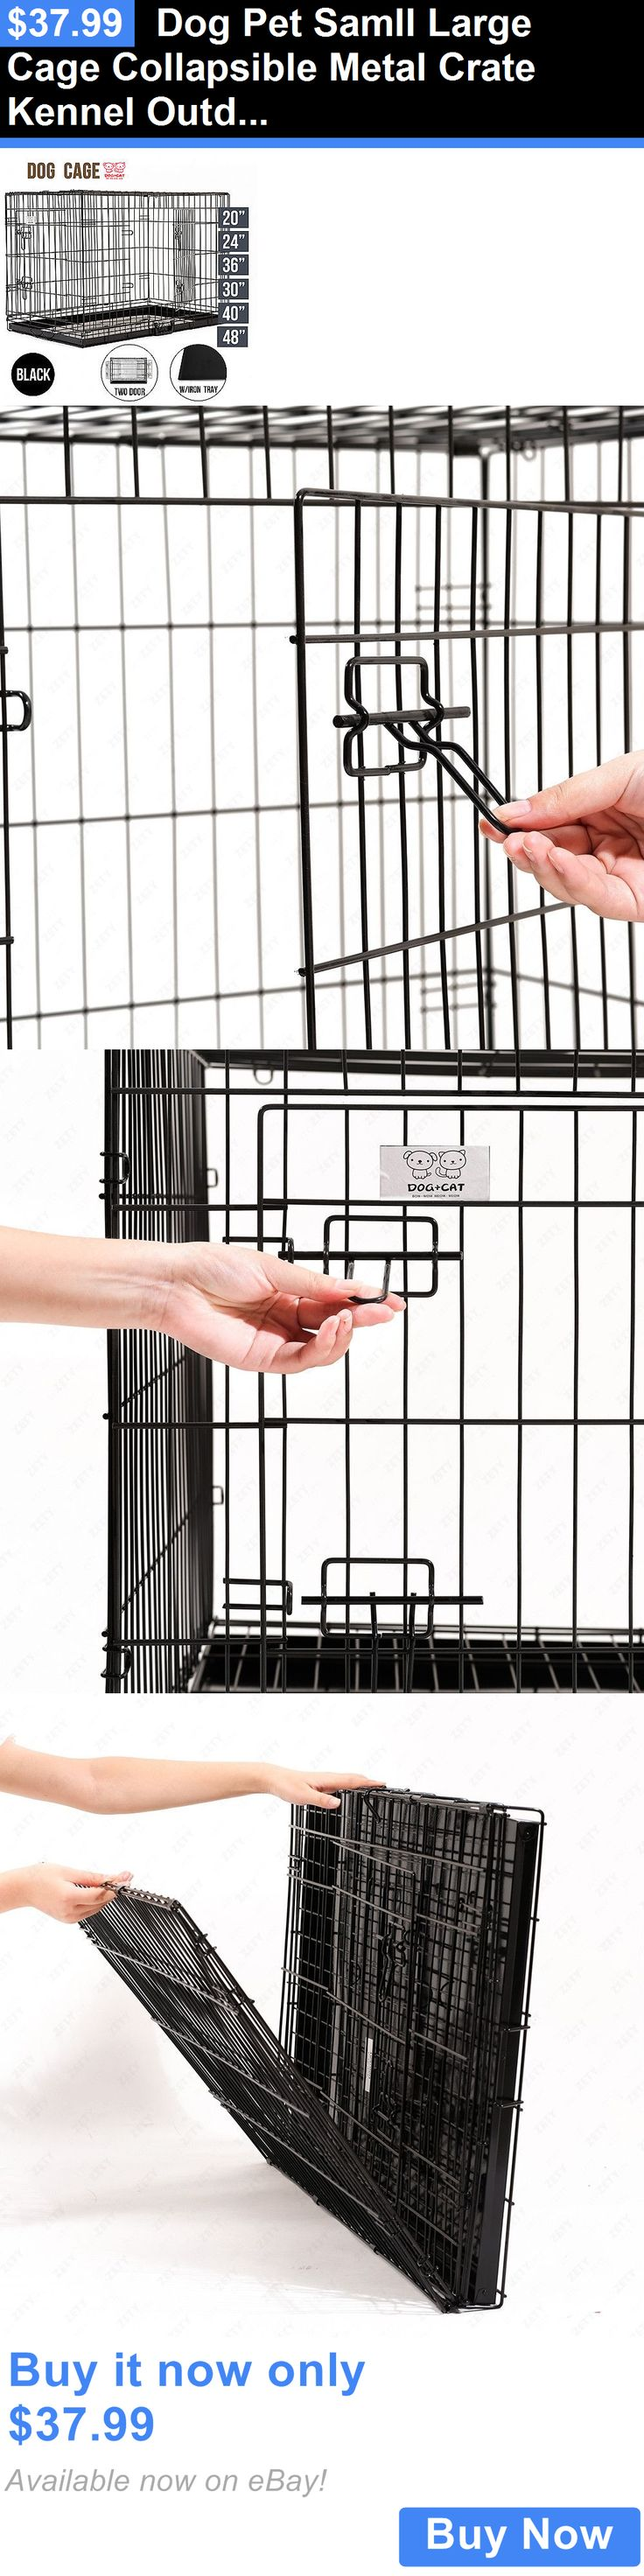 Animals Dog: Dog Pet Samll Large Cage Collapsible Metal Crate Kennel Outdoor House Playpen BUY IT NOW ONLY: $37.99